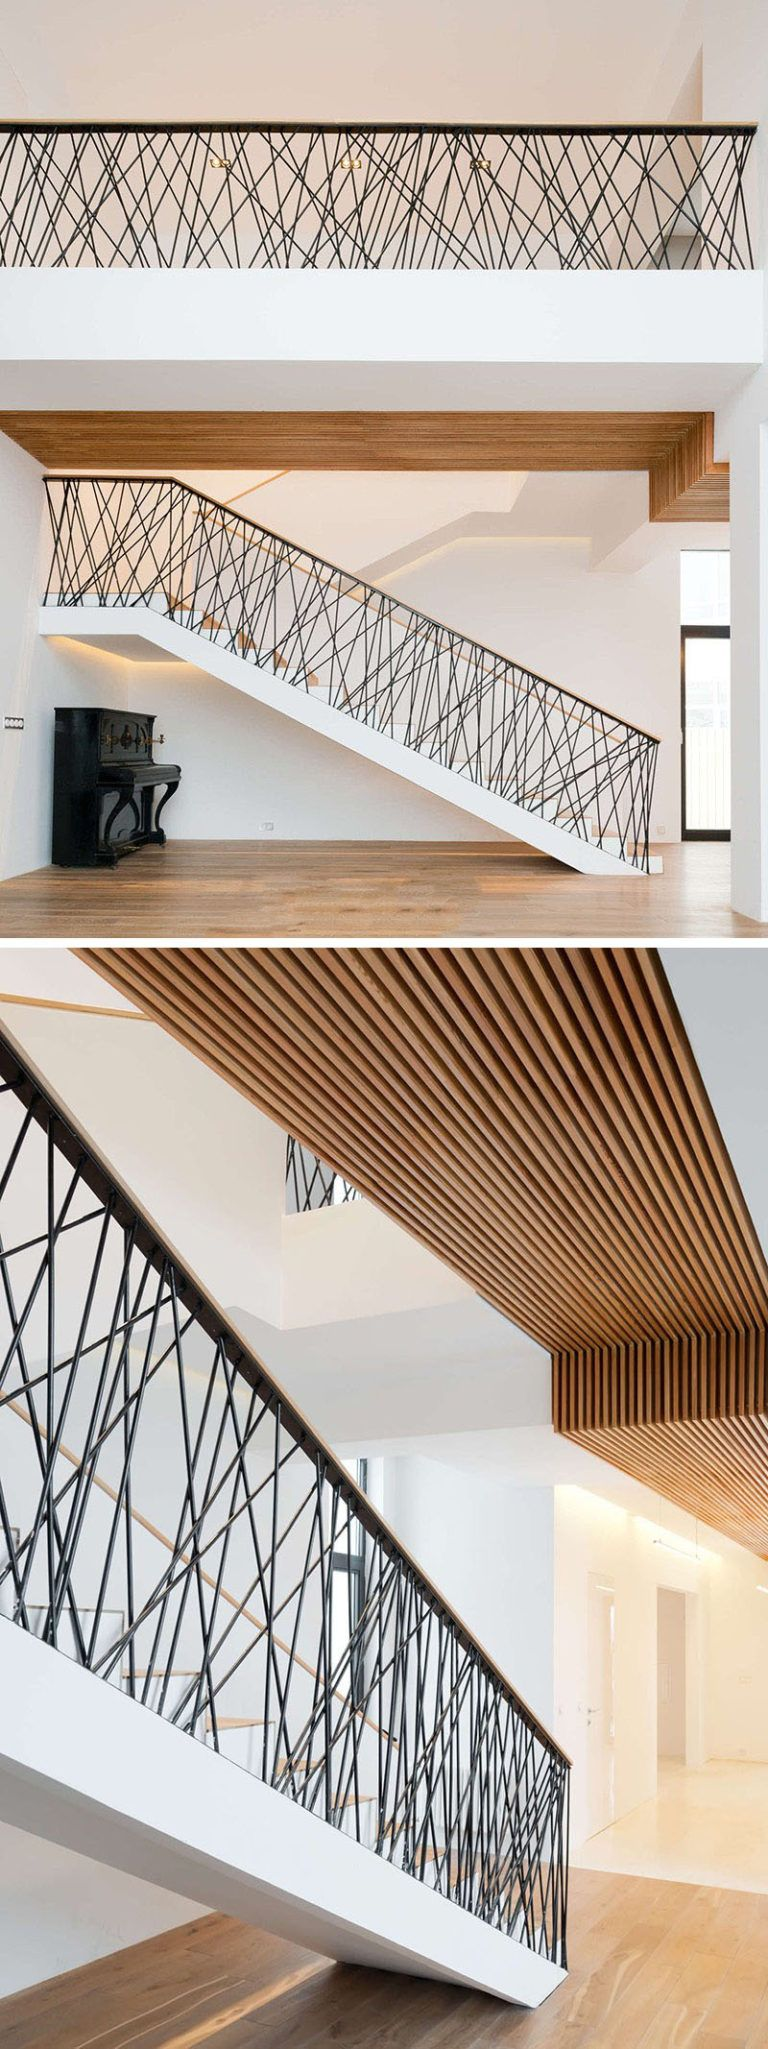 11 Creative Stair Railings That Are A Focal Point In These | Internal Staircase Railing Designs